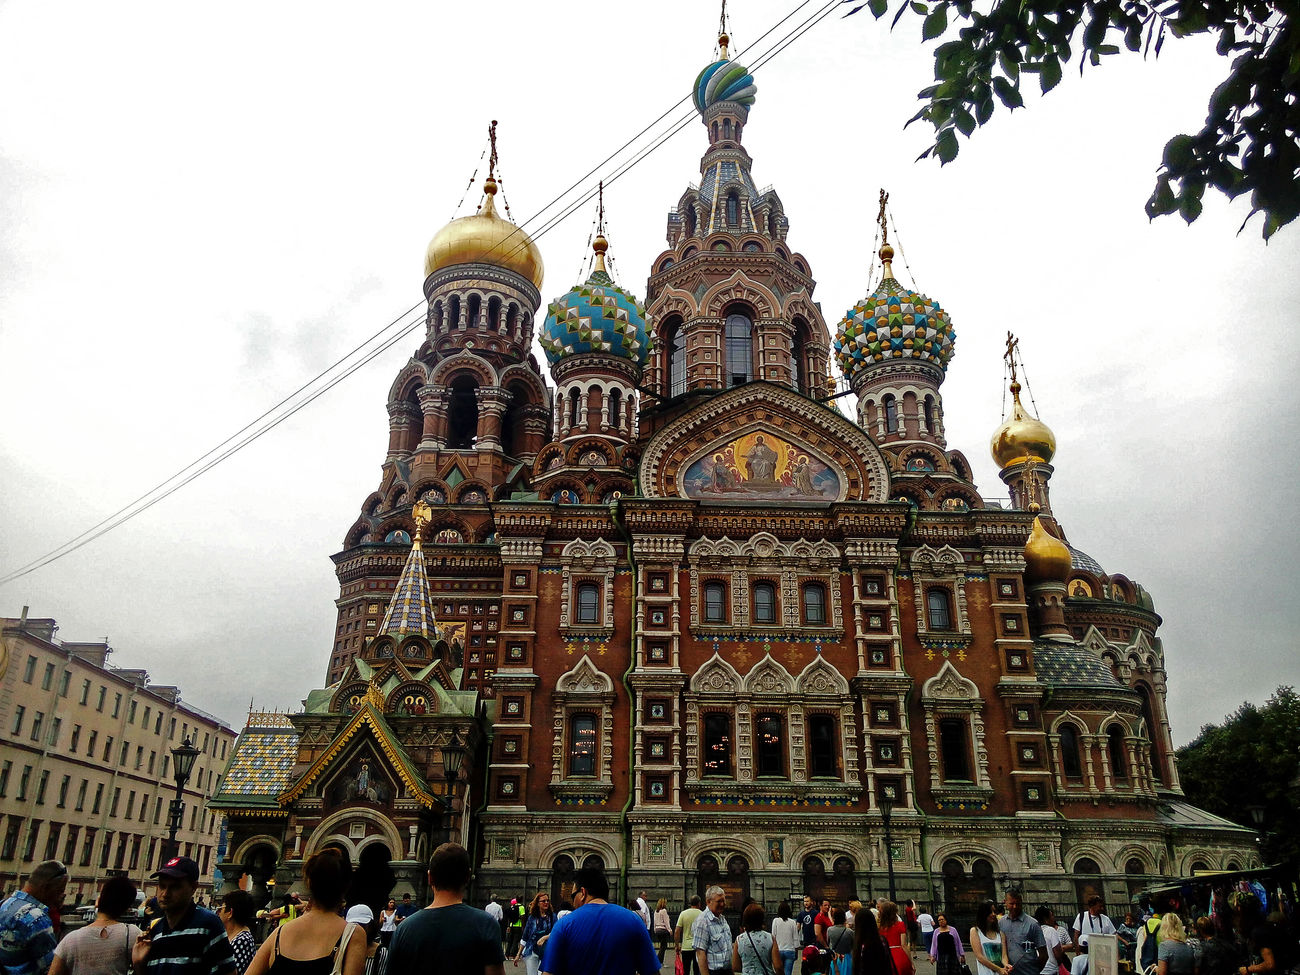 Architecture Dome City Building Exterior Gold Colored Large Group Of People Travel Destinations People Religion религия канал грибоедова Griboyedov Canal Спас на крови Savior On The Spilled Blood History искусство история культура Санкт-Петербург Самый лучший город St.petersburg Питер Russia Life Celebration